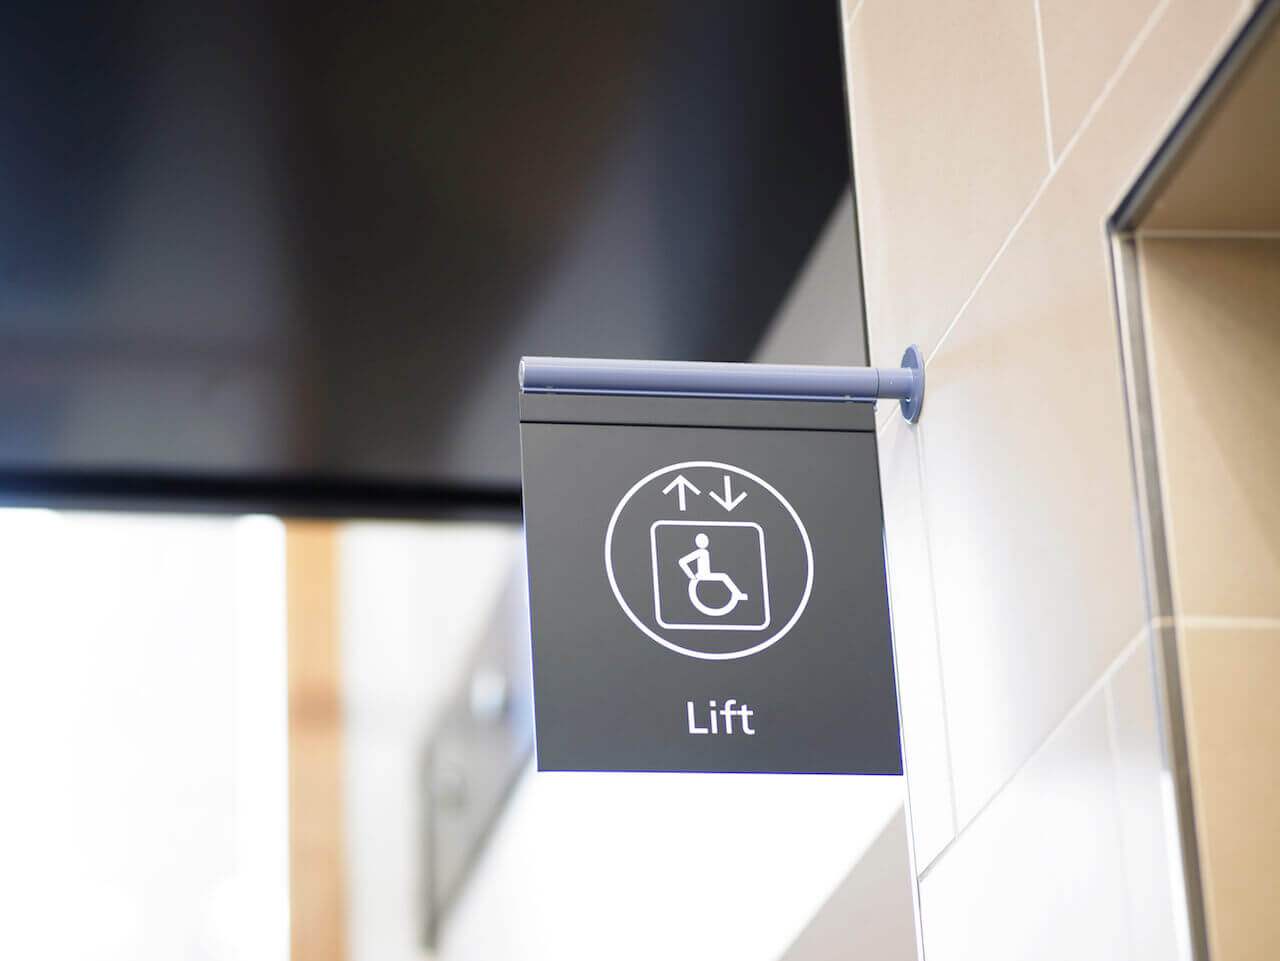 A sign for the lift showing a wheelchair icon to highlight the location